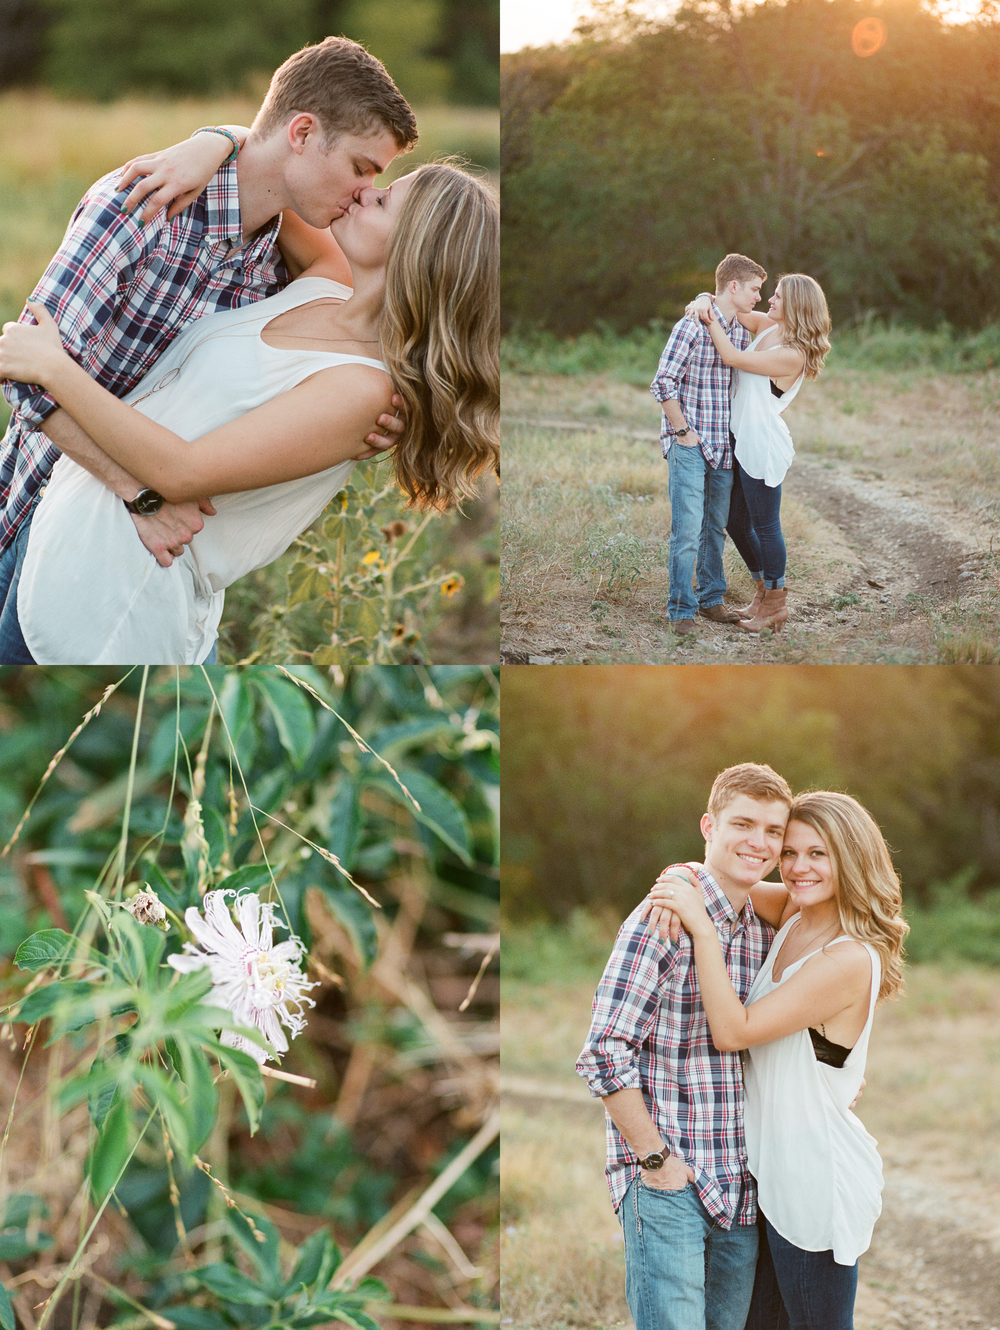 dallas-tx-engagements-arbor-hills-nature-preserve-rebecca-steven-42